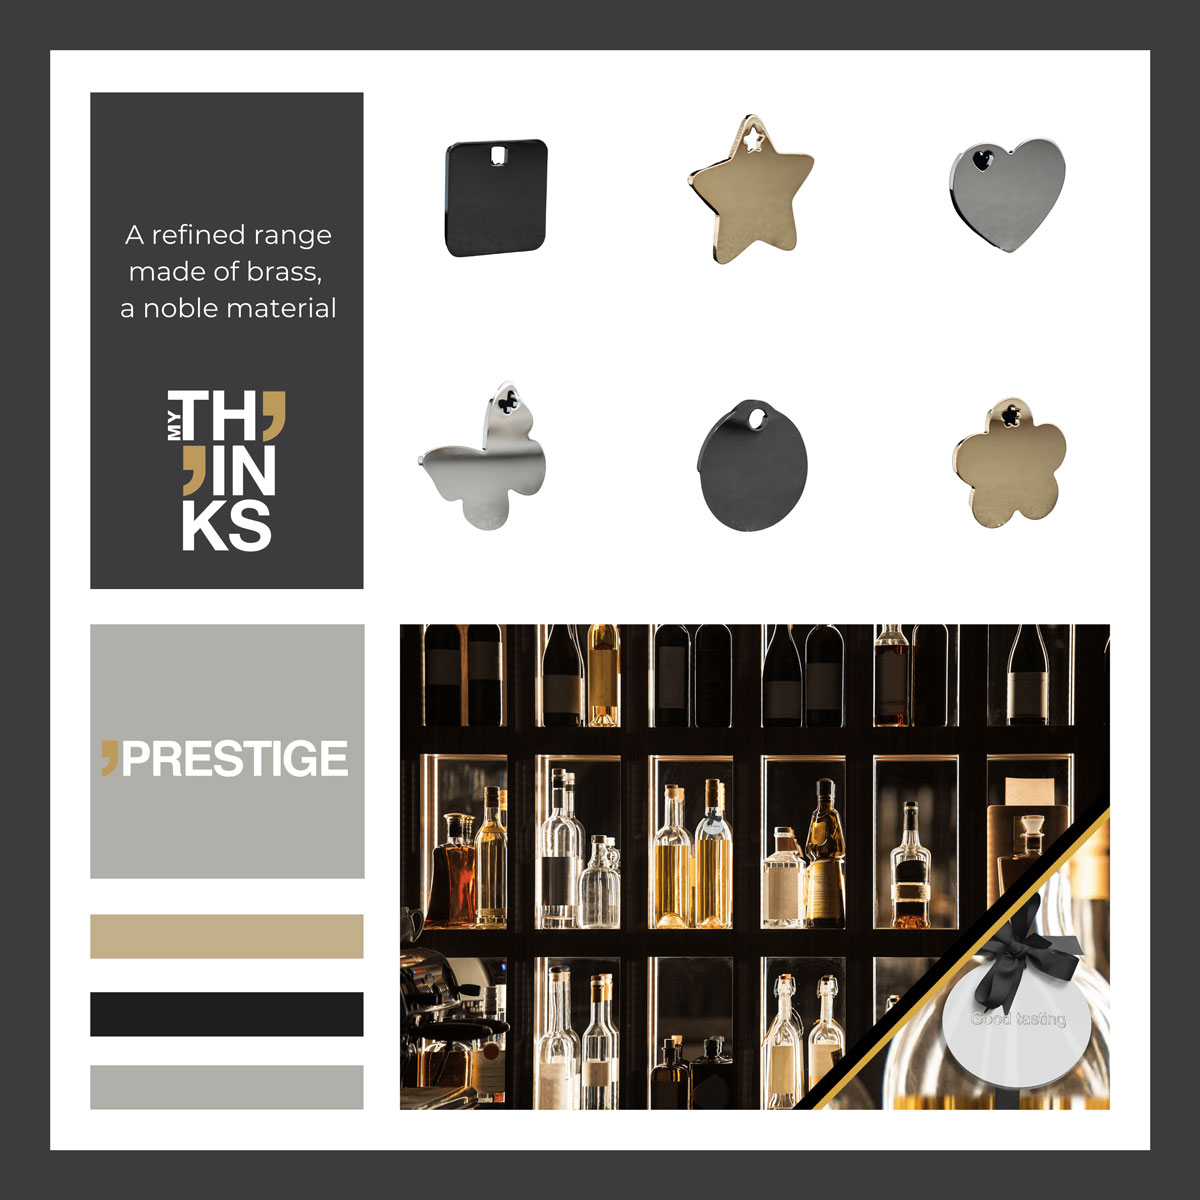 Coated brass Prestige gifts collection color chart with circle chromed charm tied around a wine bottle neck